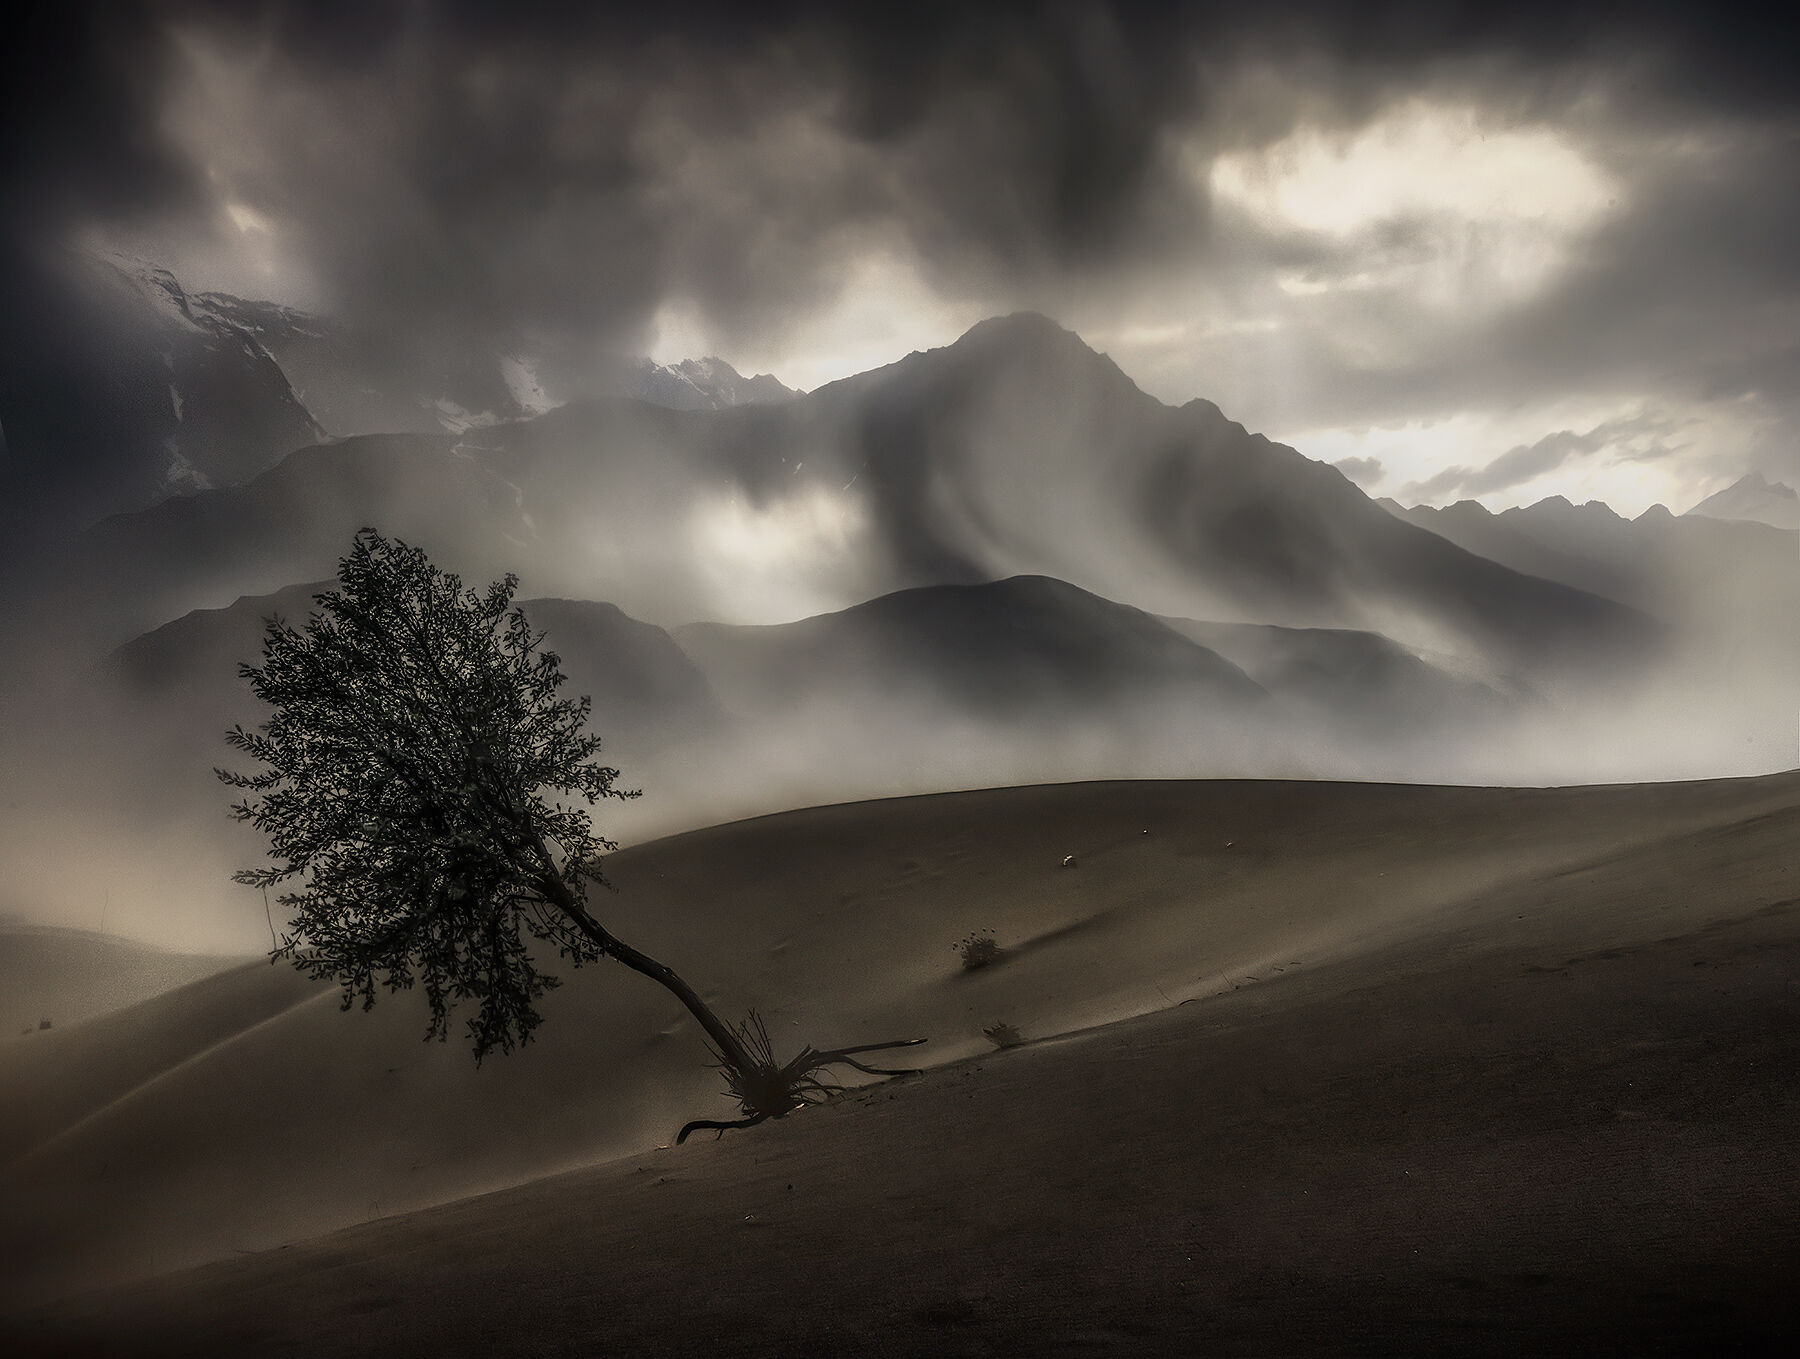 Light breaks through the storm over a lone tree on the dunes in a mountain valley within Northern Pakistan.